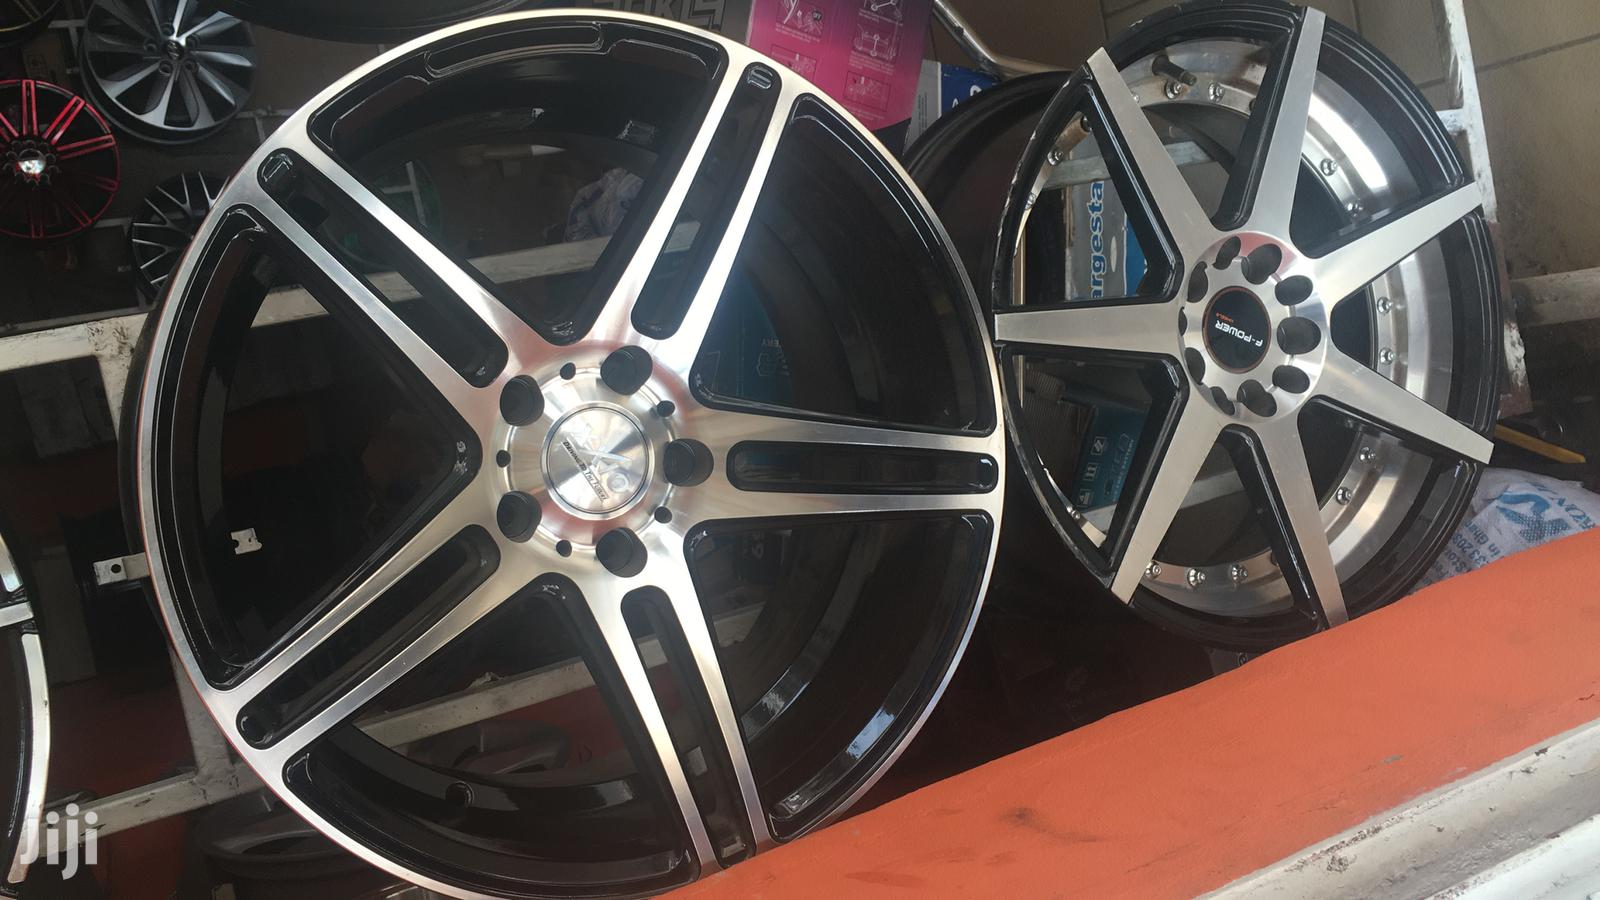 Sale of Brand New Rim 18 for Benz Camry Etc | Vehicle Parts & Accessories for sale in Abelemkpe, Greater Accra, Ghana